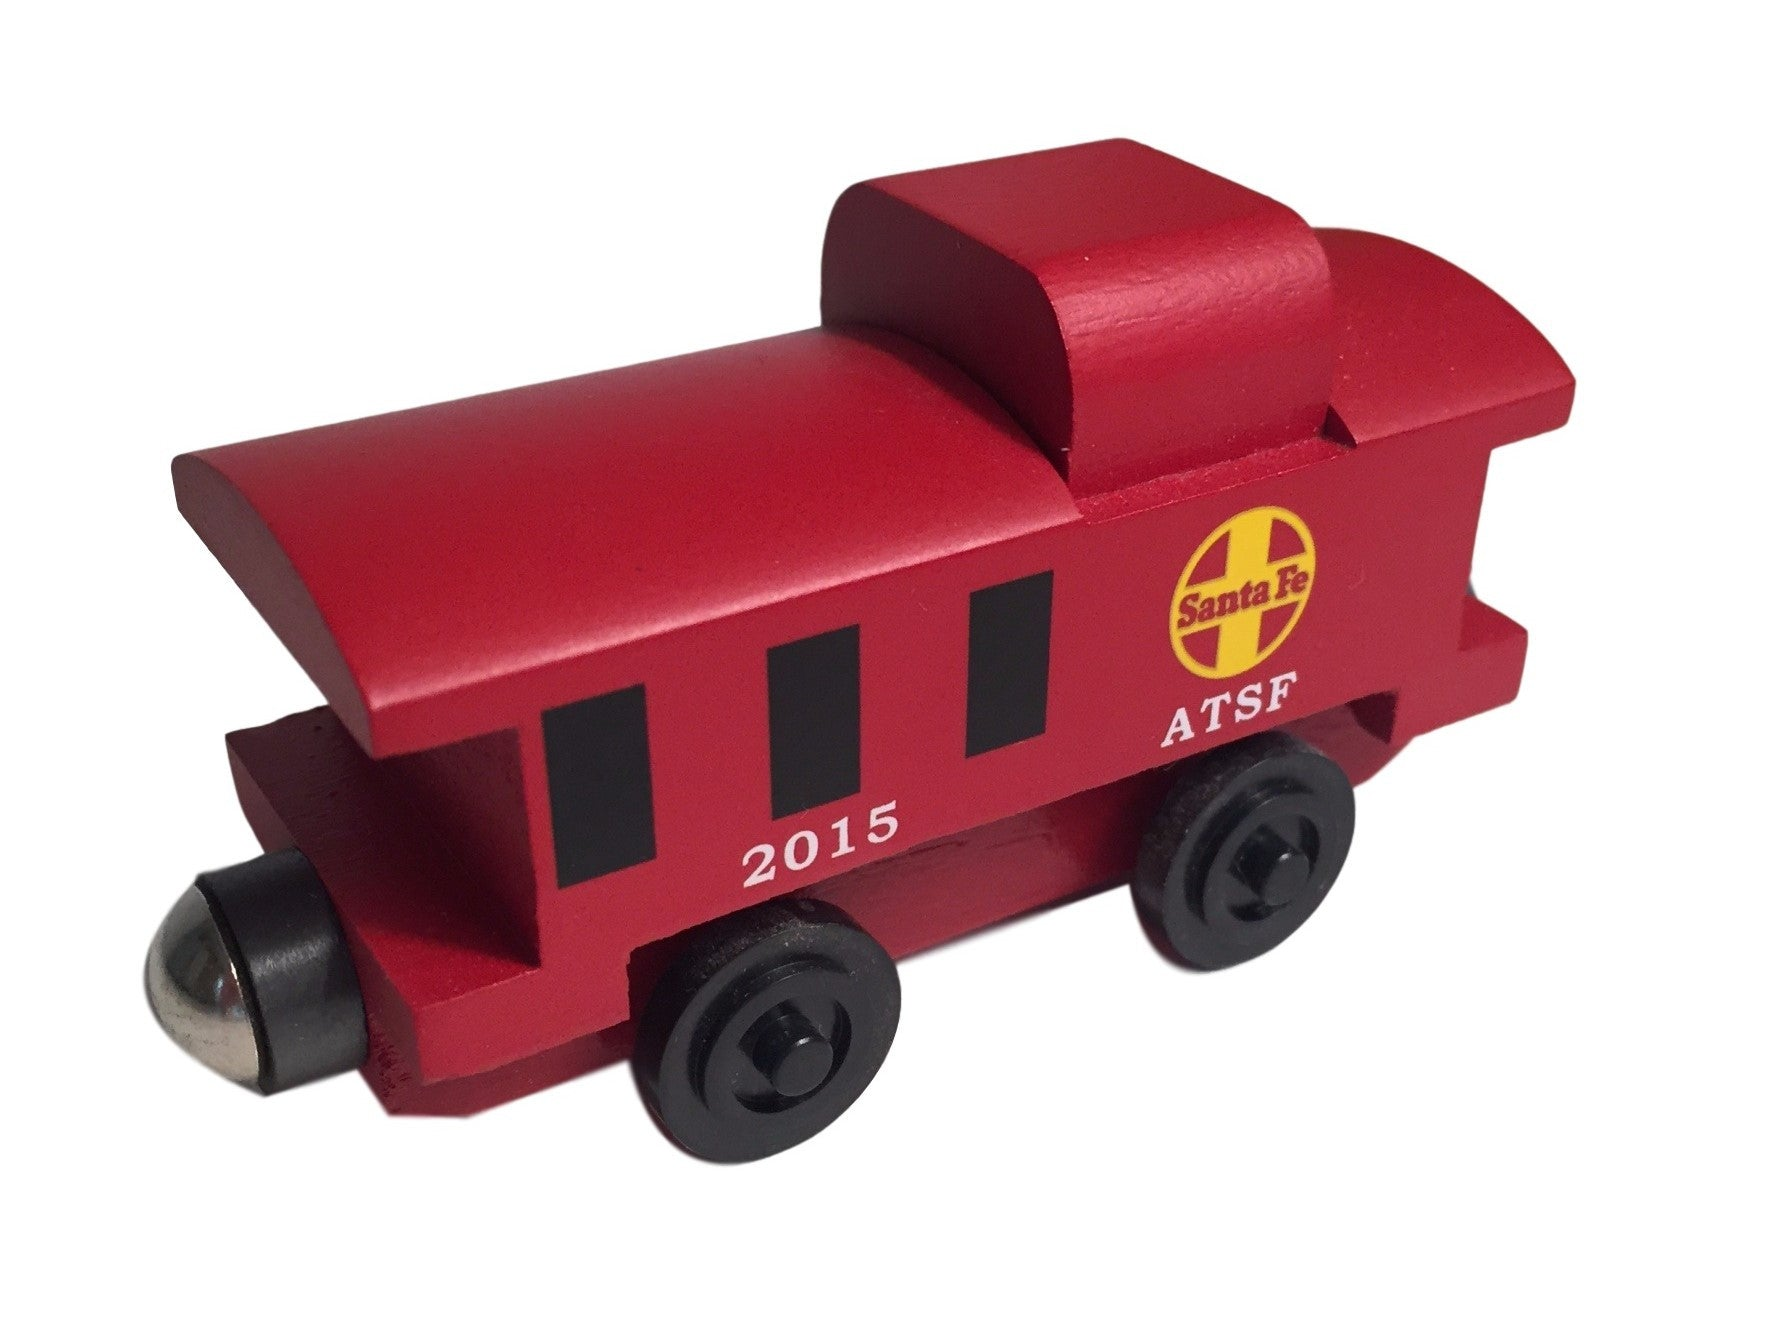 Whittle Shortline Railroad Santa Fe Caboose Wooden Toy Train